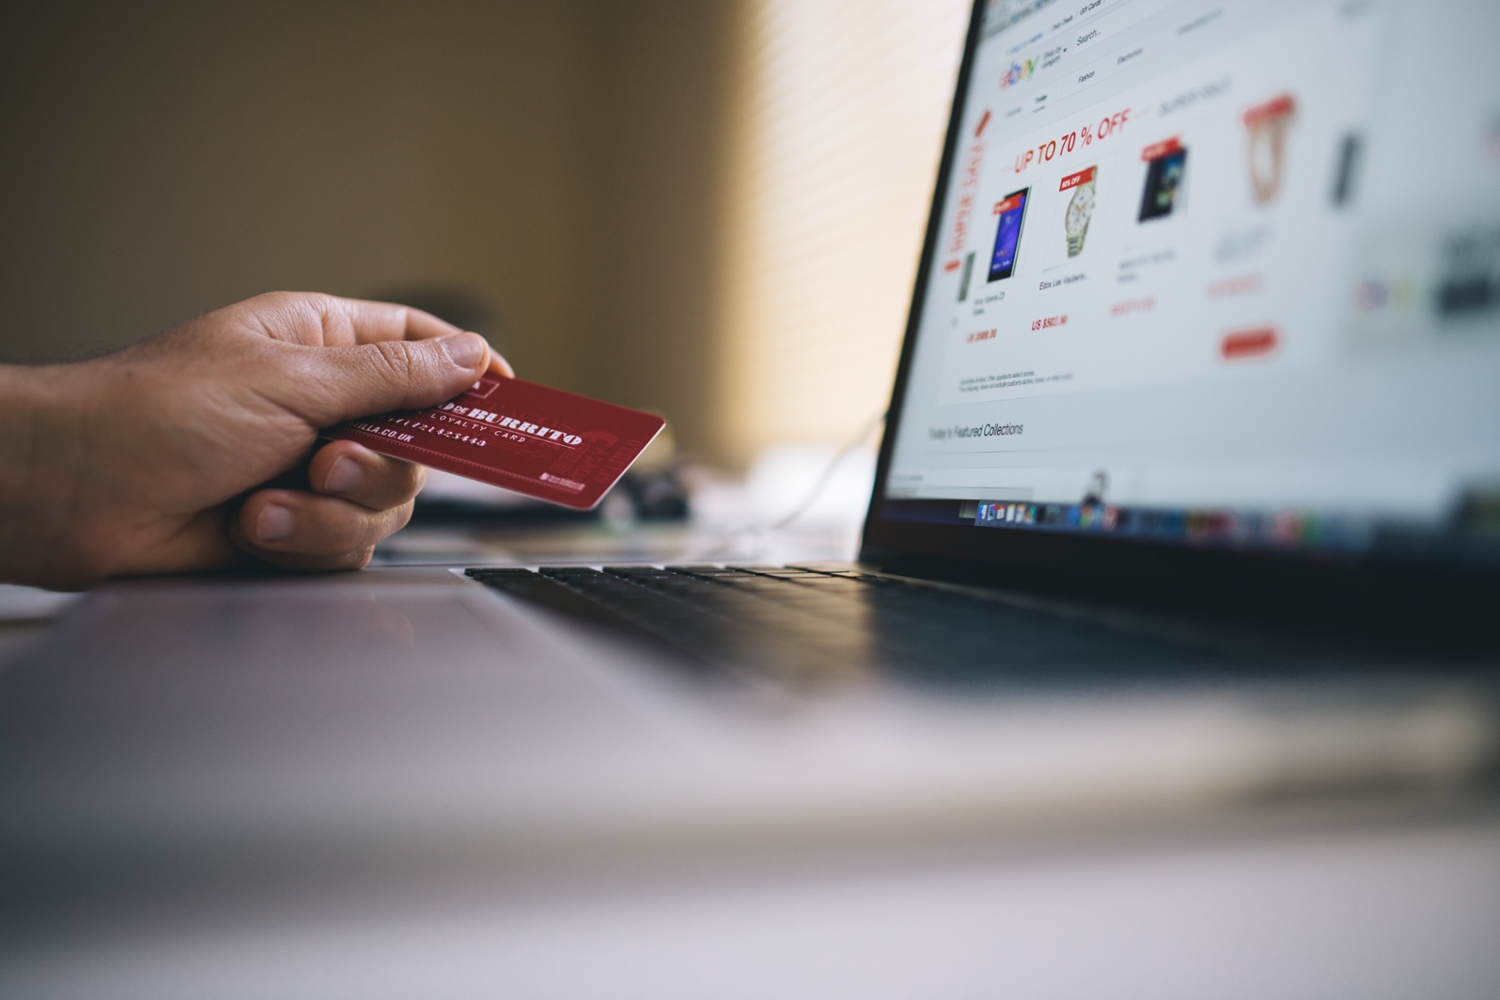 online shopping on a laptop with credit card in hand